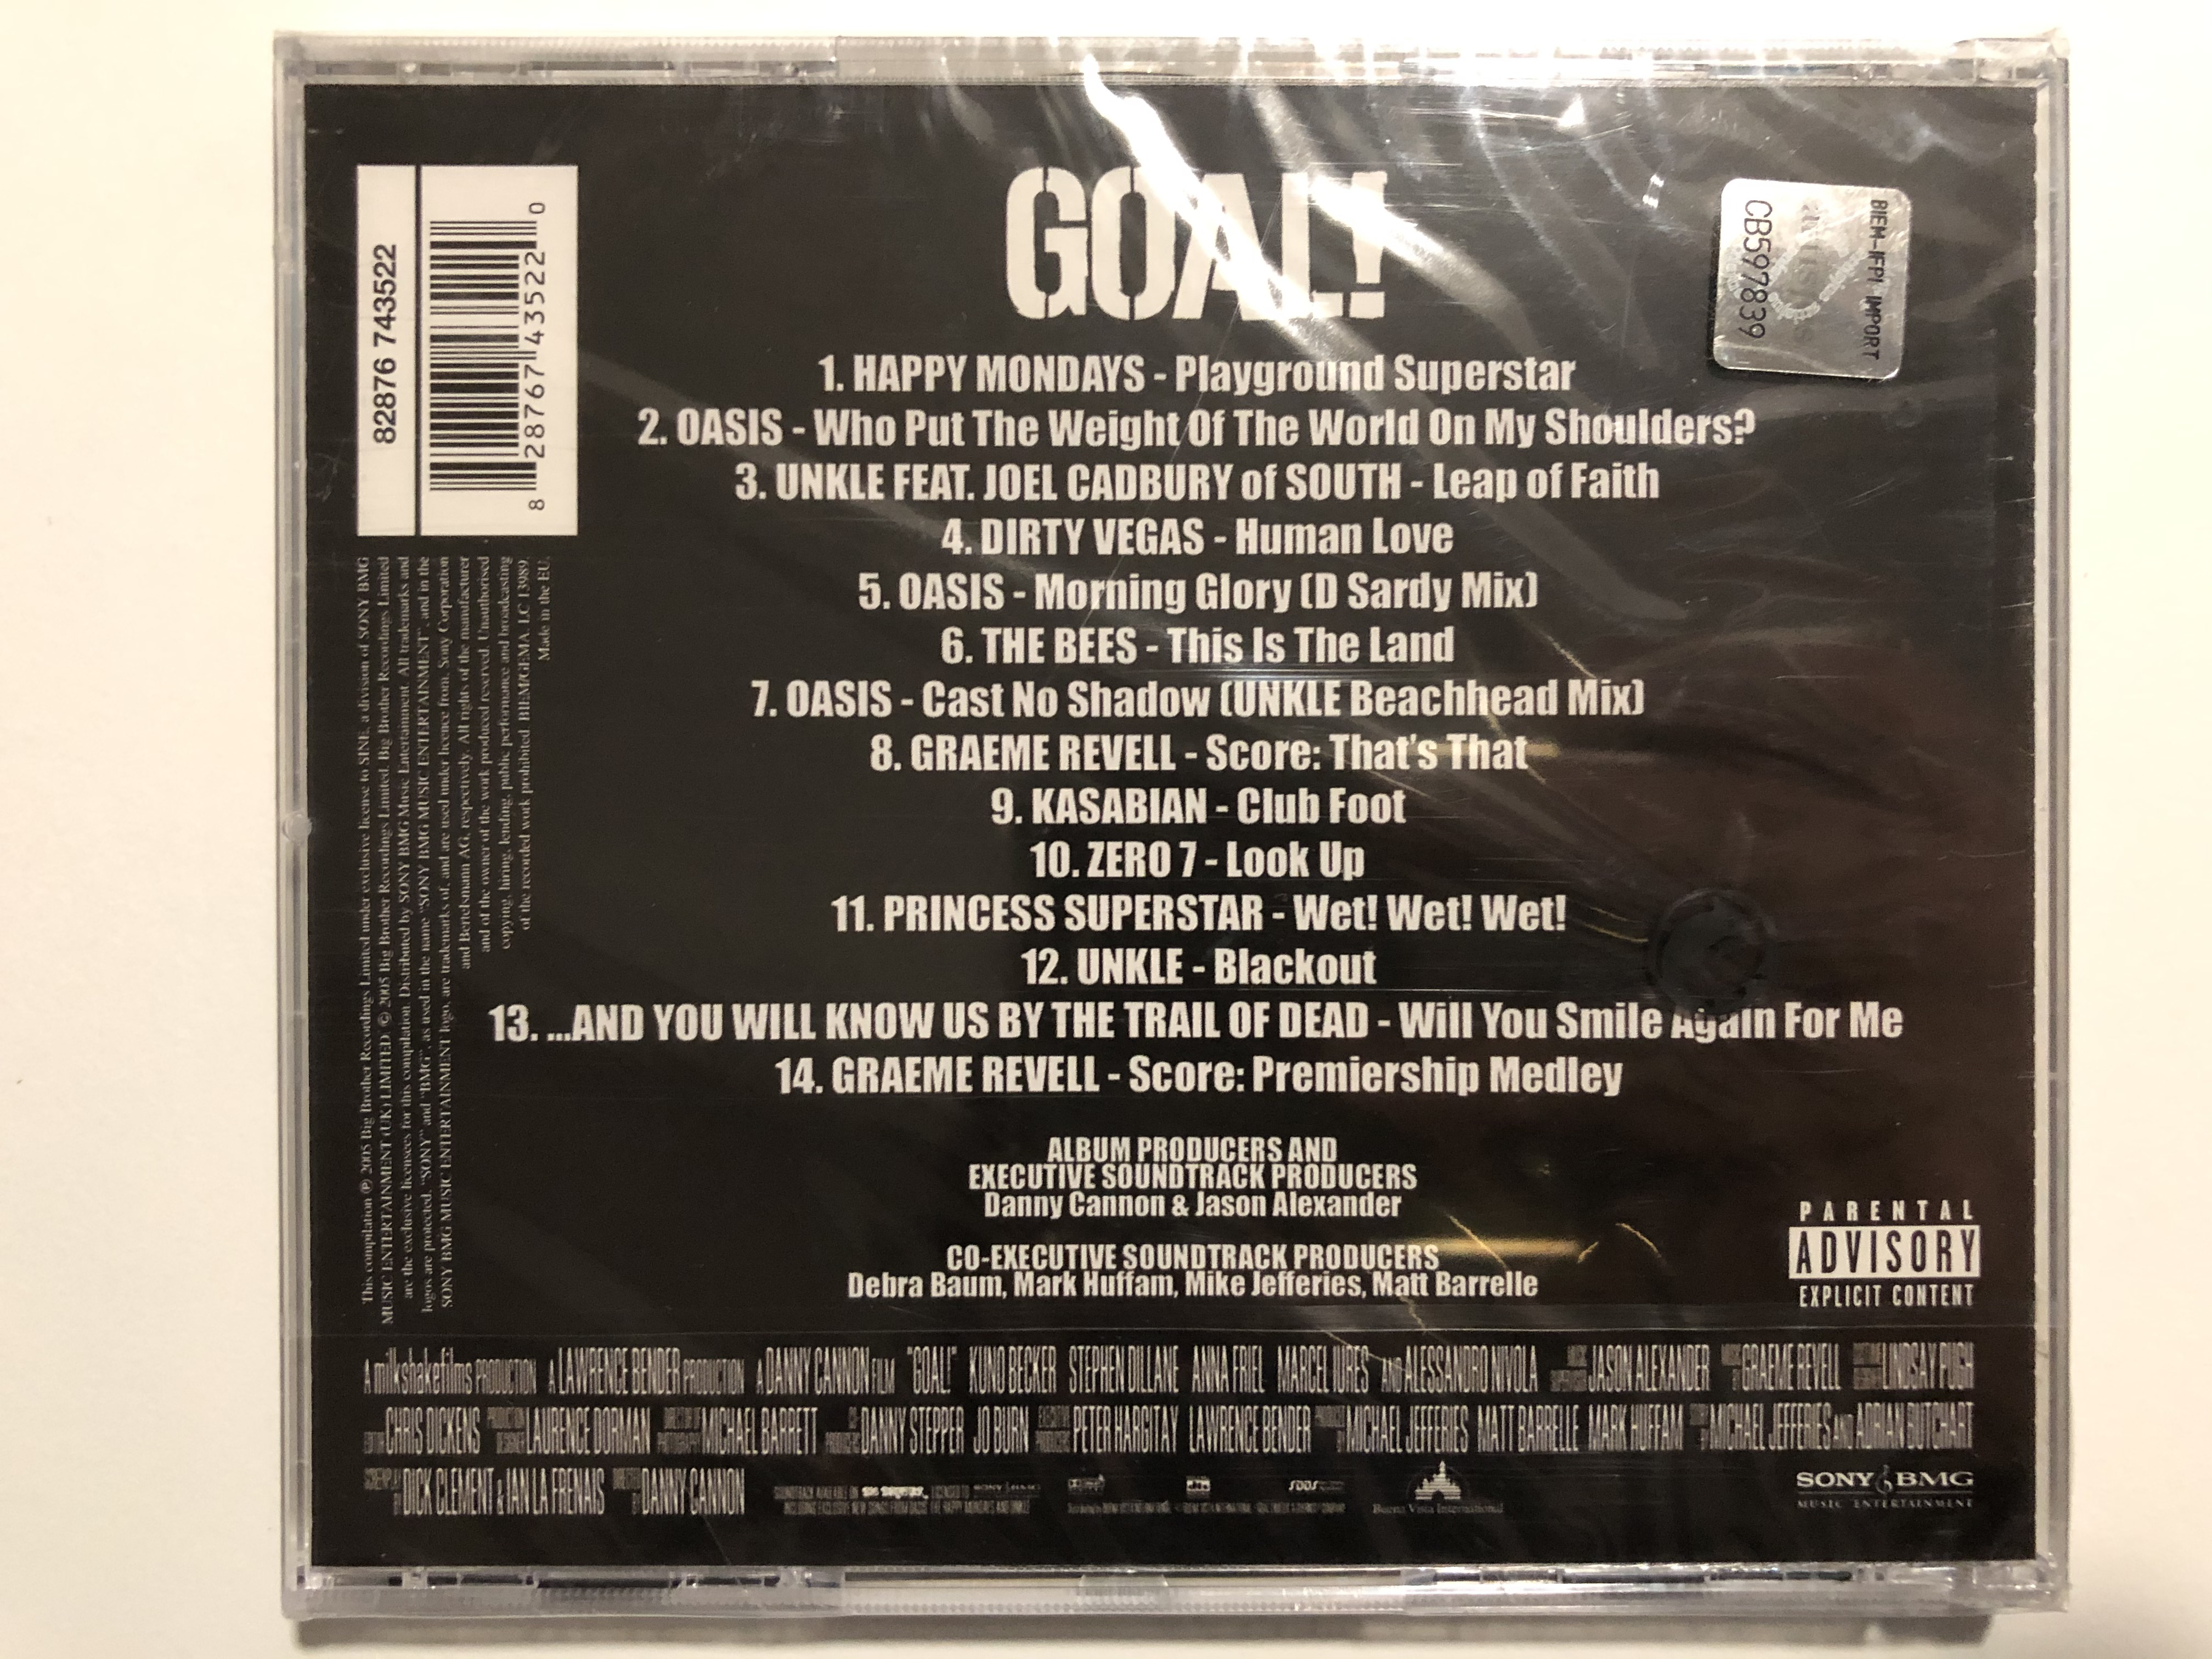 a-danny-cannon-film-goal-music-from-the-motion-picture-featuring-oasis-happy-mondays-kasabian-unkle-dirty-vegas-zero-7-the-bees-big-brother-audio-cd-2005-82876-743522-2-.jpg